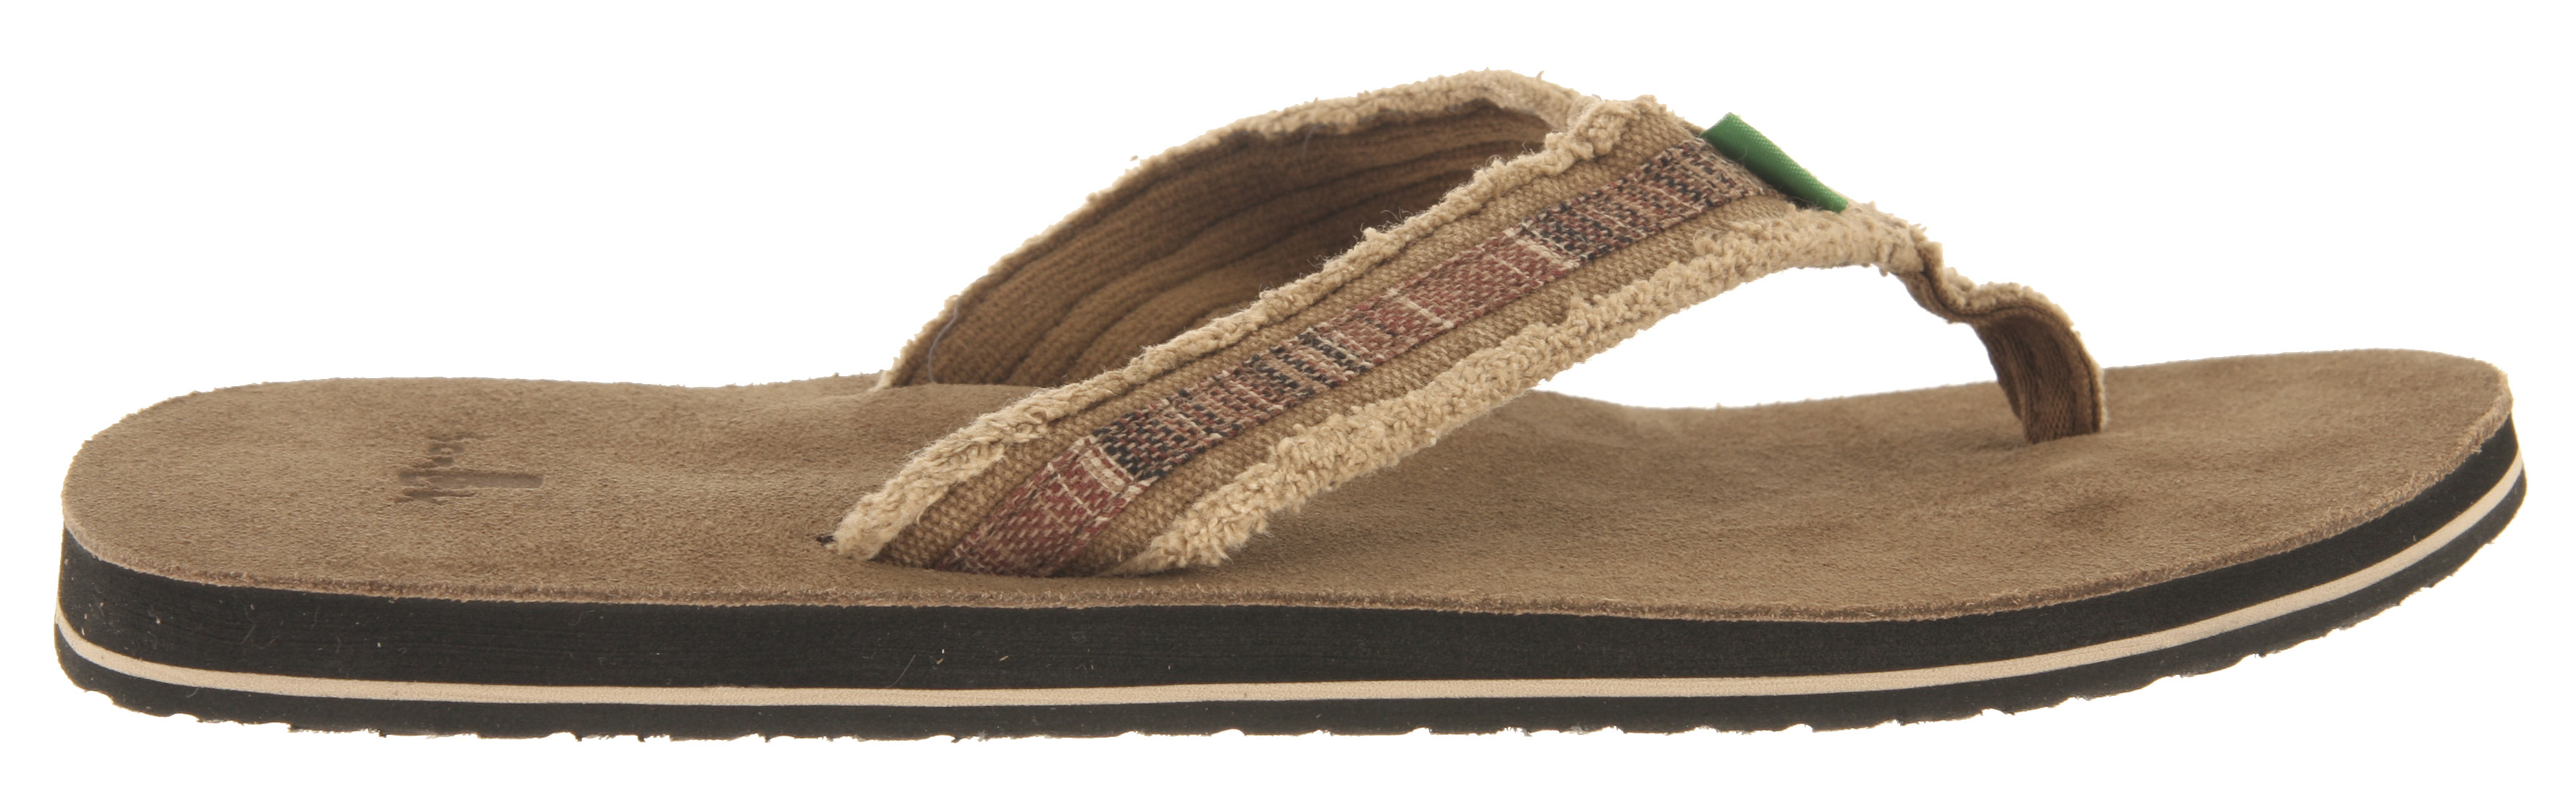 Surf Is super insanely comfy our middle name? Fraid so.Key Features of the Sanuk Fraid So Sandals: Super Soft, High Rebound EVA Footbed with Premium Suede Sockliner Happy U Outsole Frayed Canvas Strap Edge Detail for a Worn Look Strap Overlay Detail adds Additional Color to a Classic Look Super Comfy Terrycloth Liner - $26.95